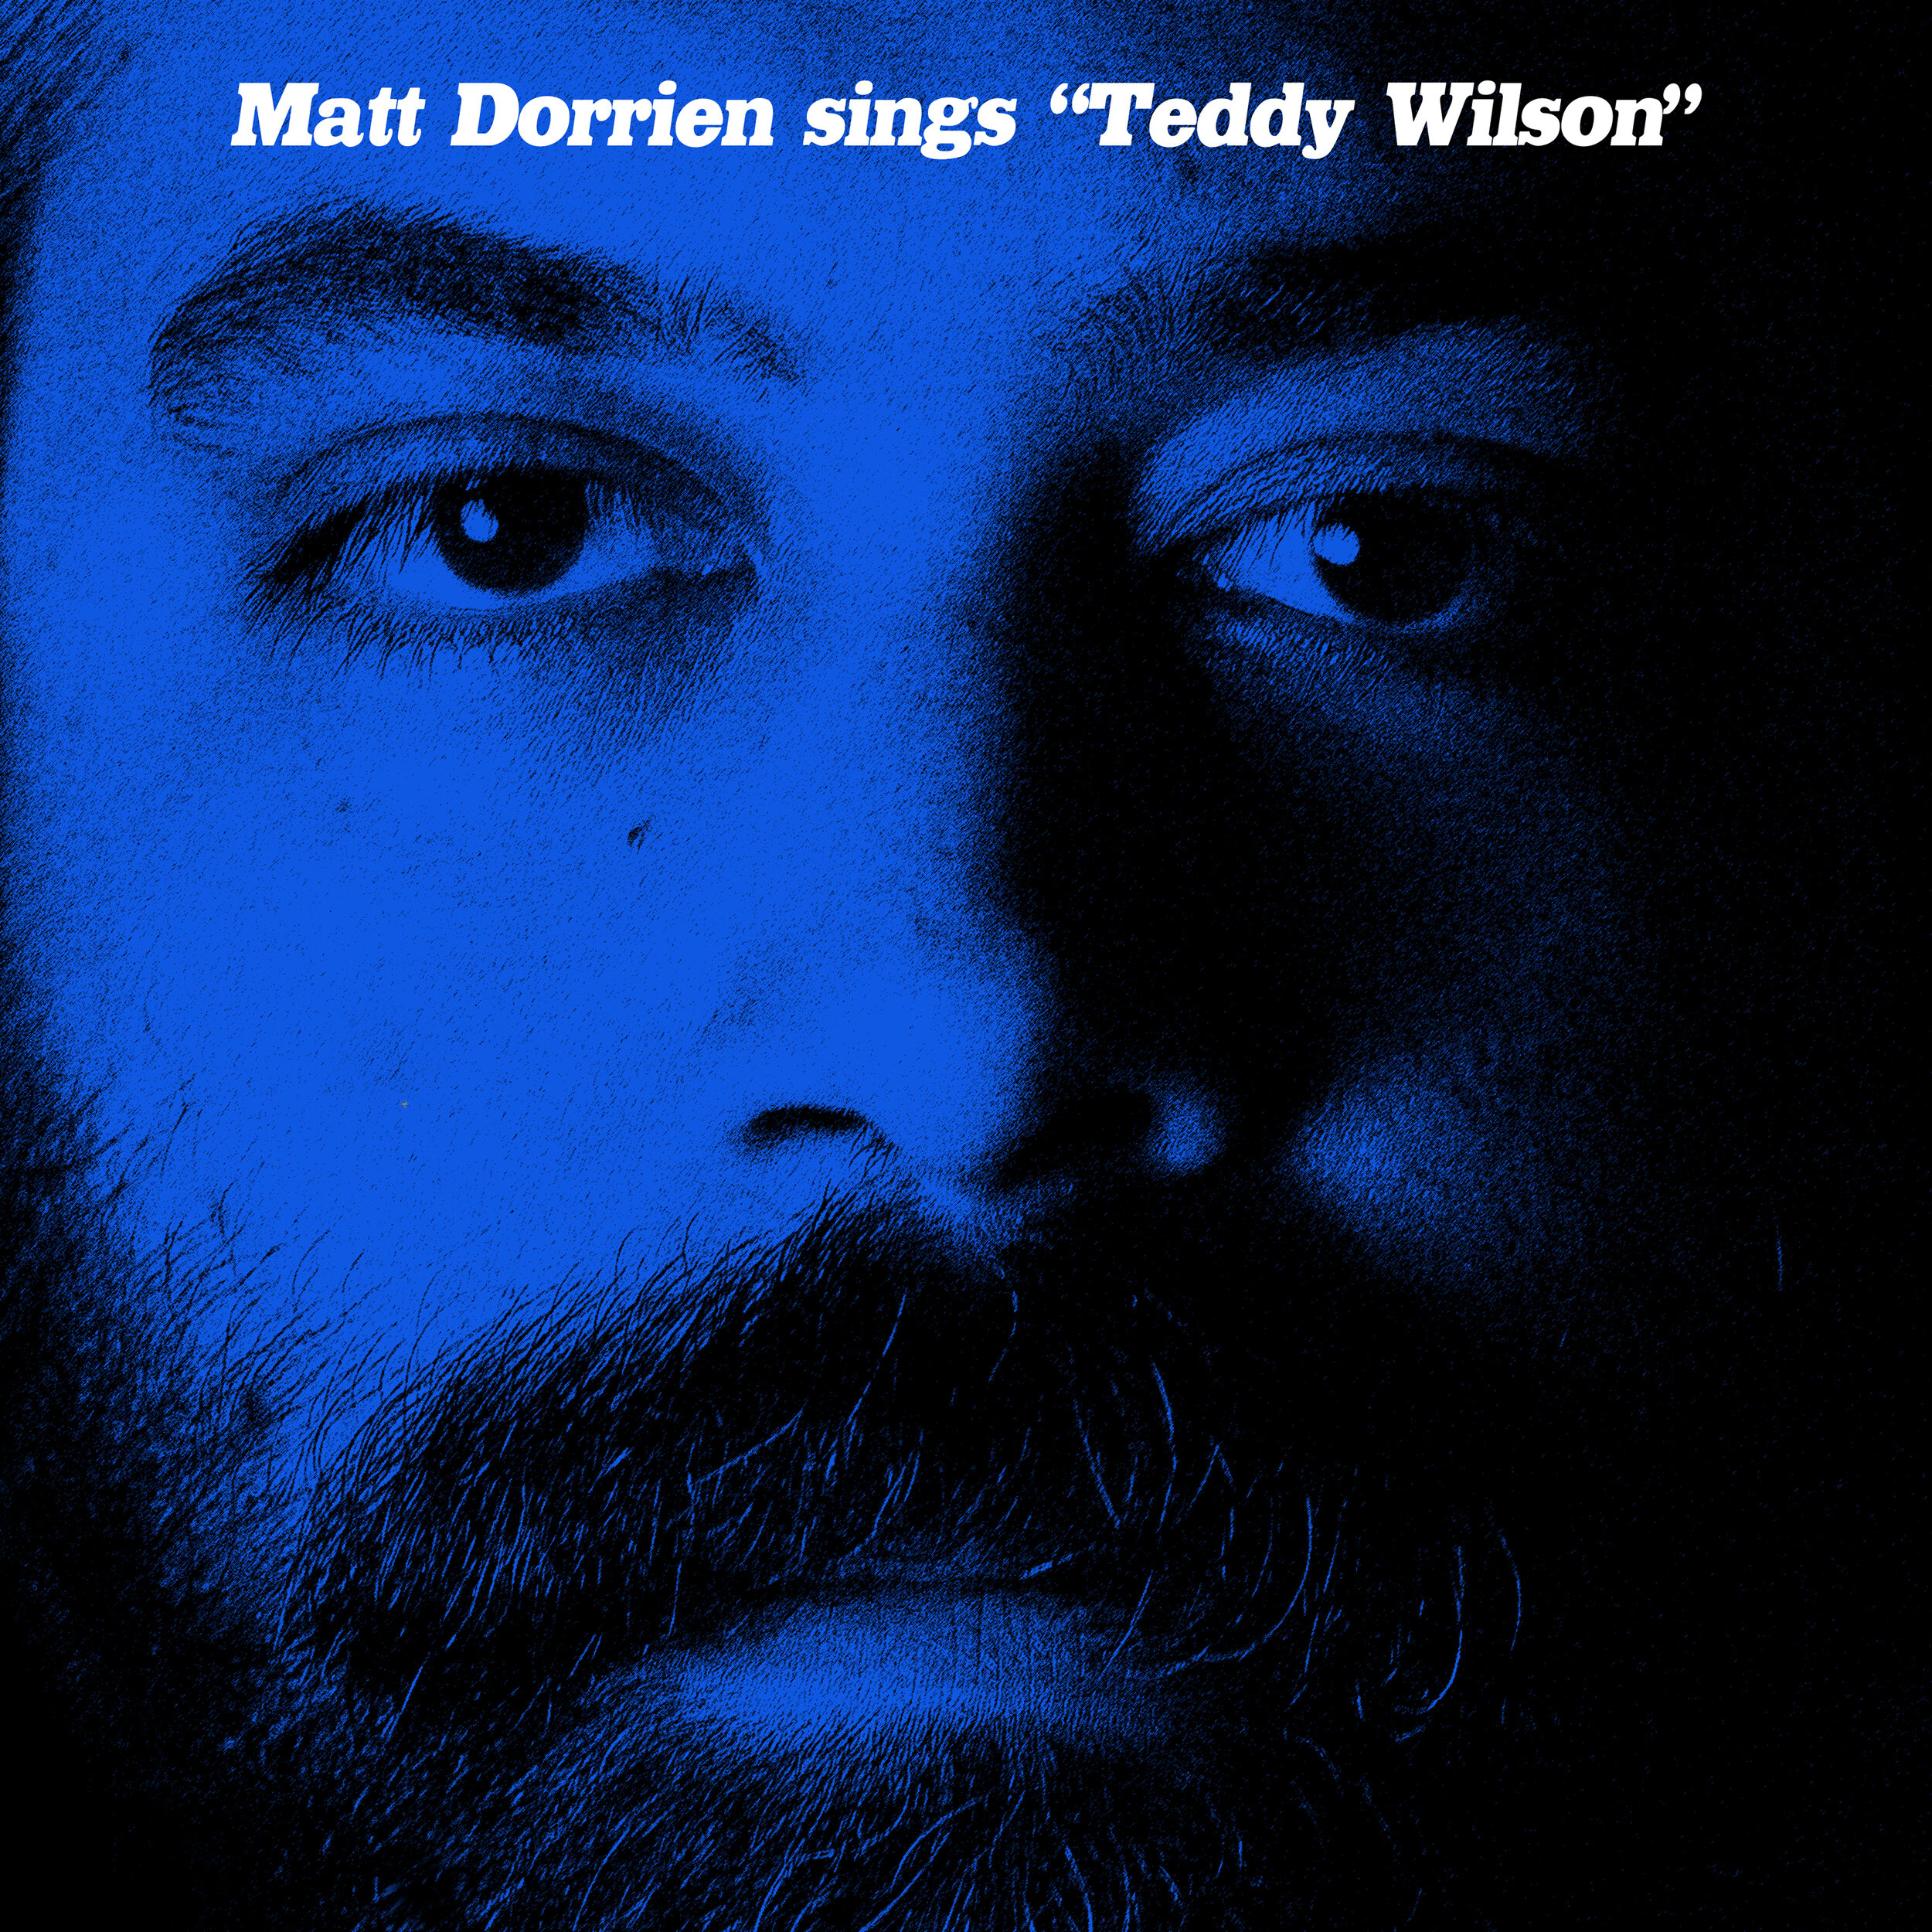 Matt Dorrien - Teddy Wilson